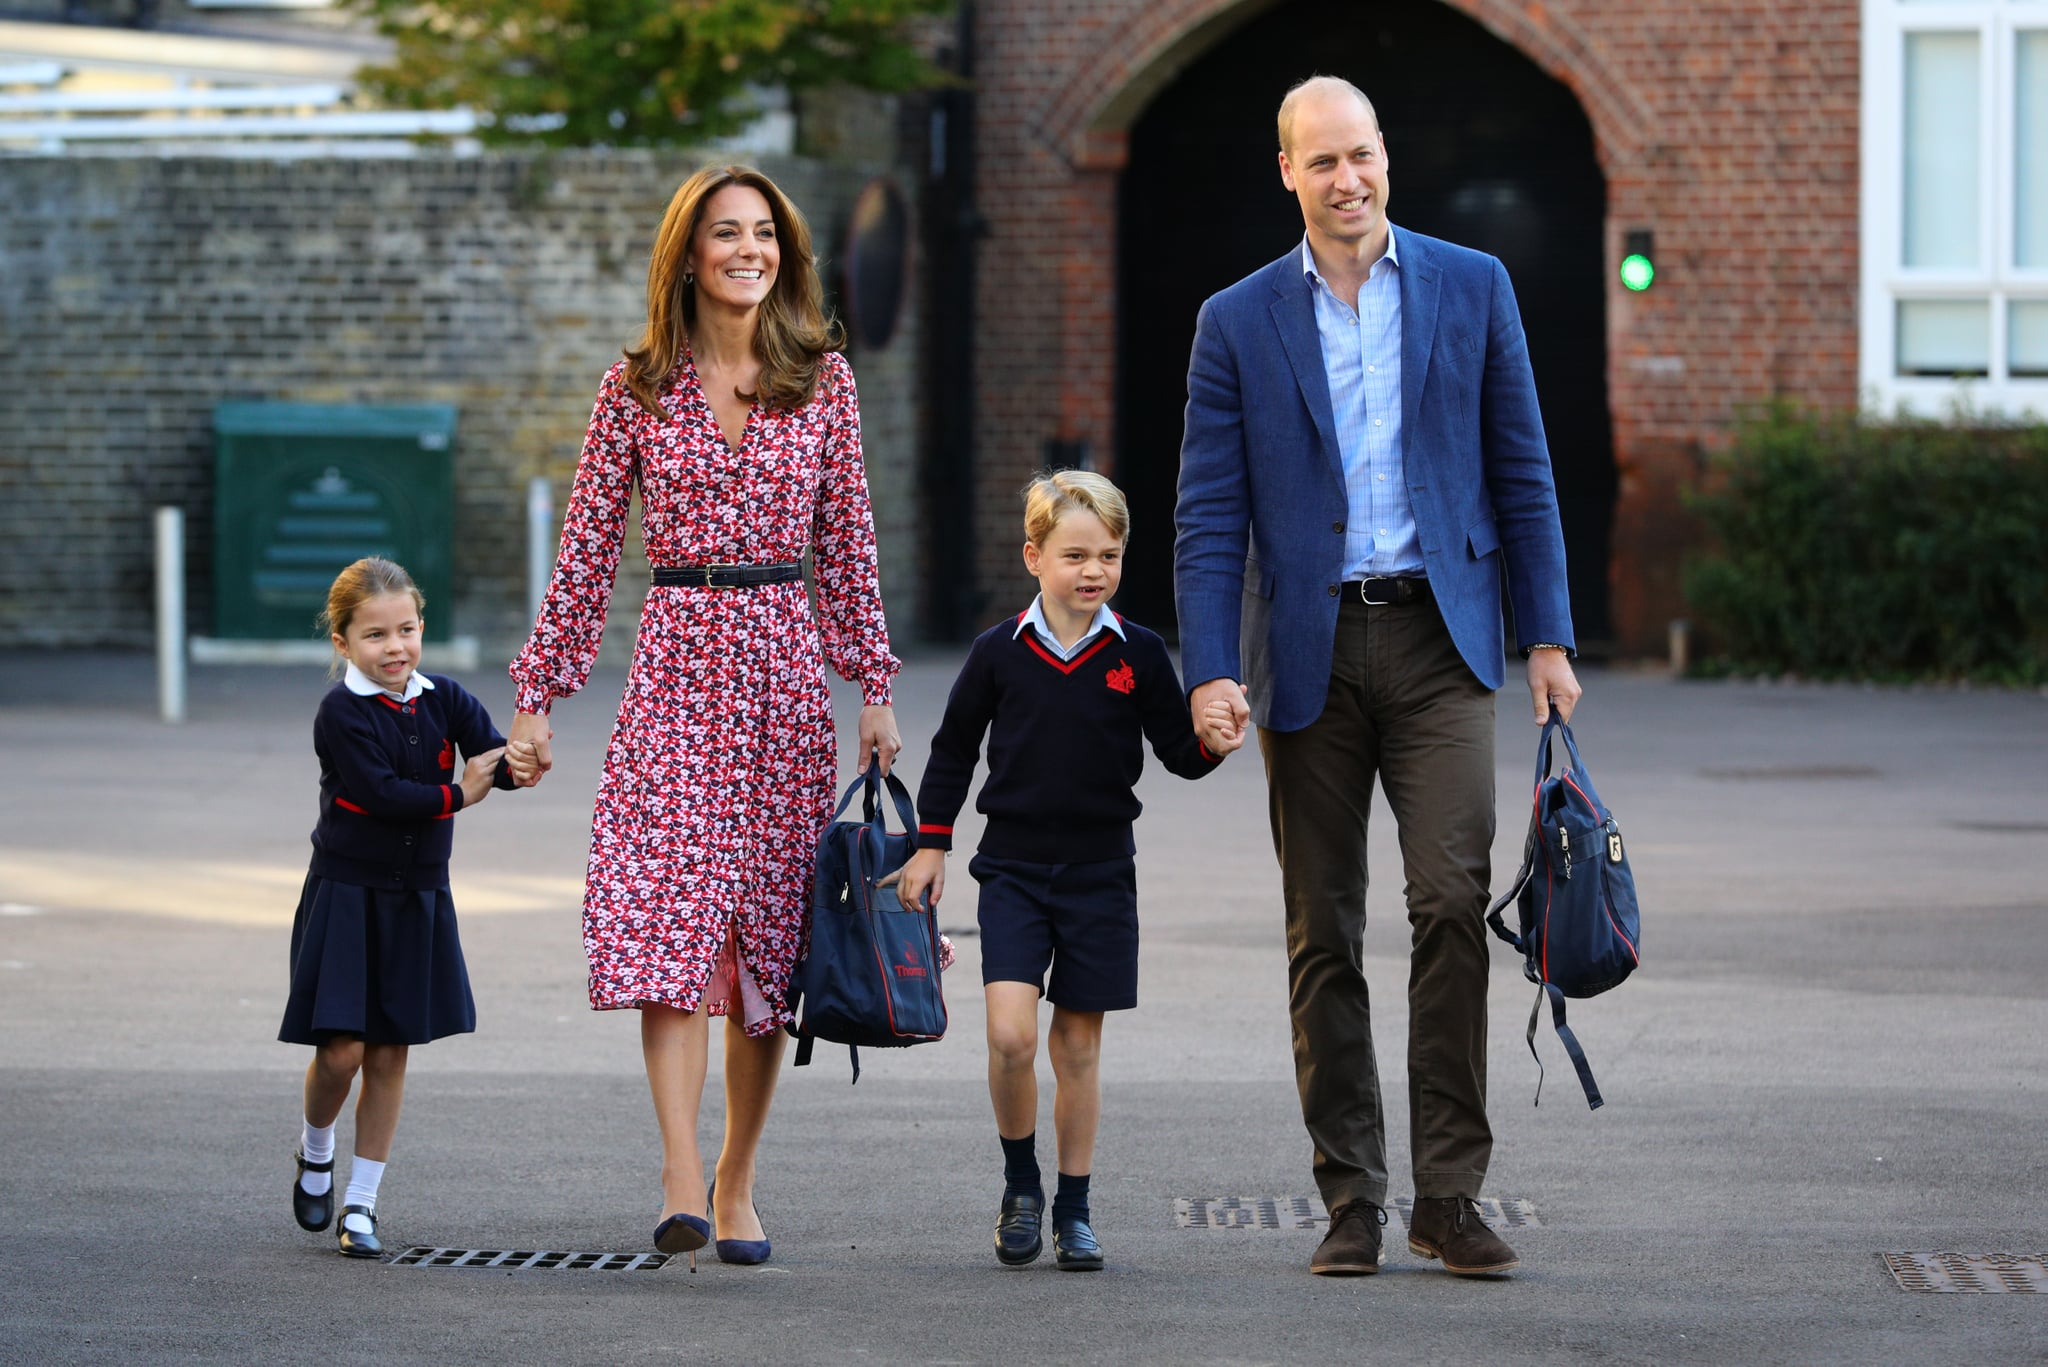 LONDON, UNITED KINGDOM - SEPTEMBER 5: Princess Charlotte arrives for her first day of school, with her brother Prince George and her parents the Duke and Duchess of Cambridge, at Thomas's Battersea in London on September 5, 2019 in London, England. (Photo by Aaron Chown - WPA Pool/Getty Images)